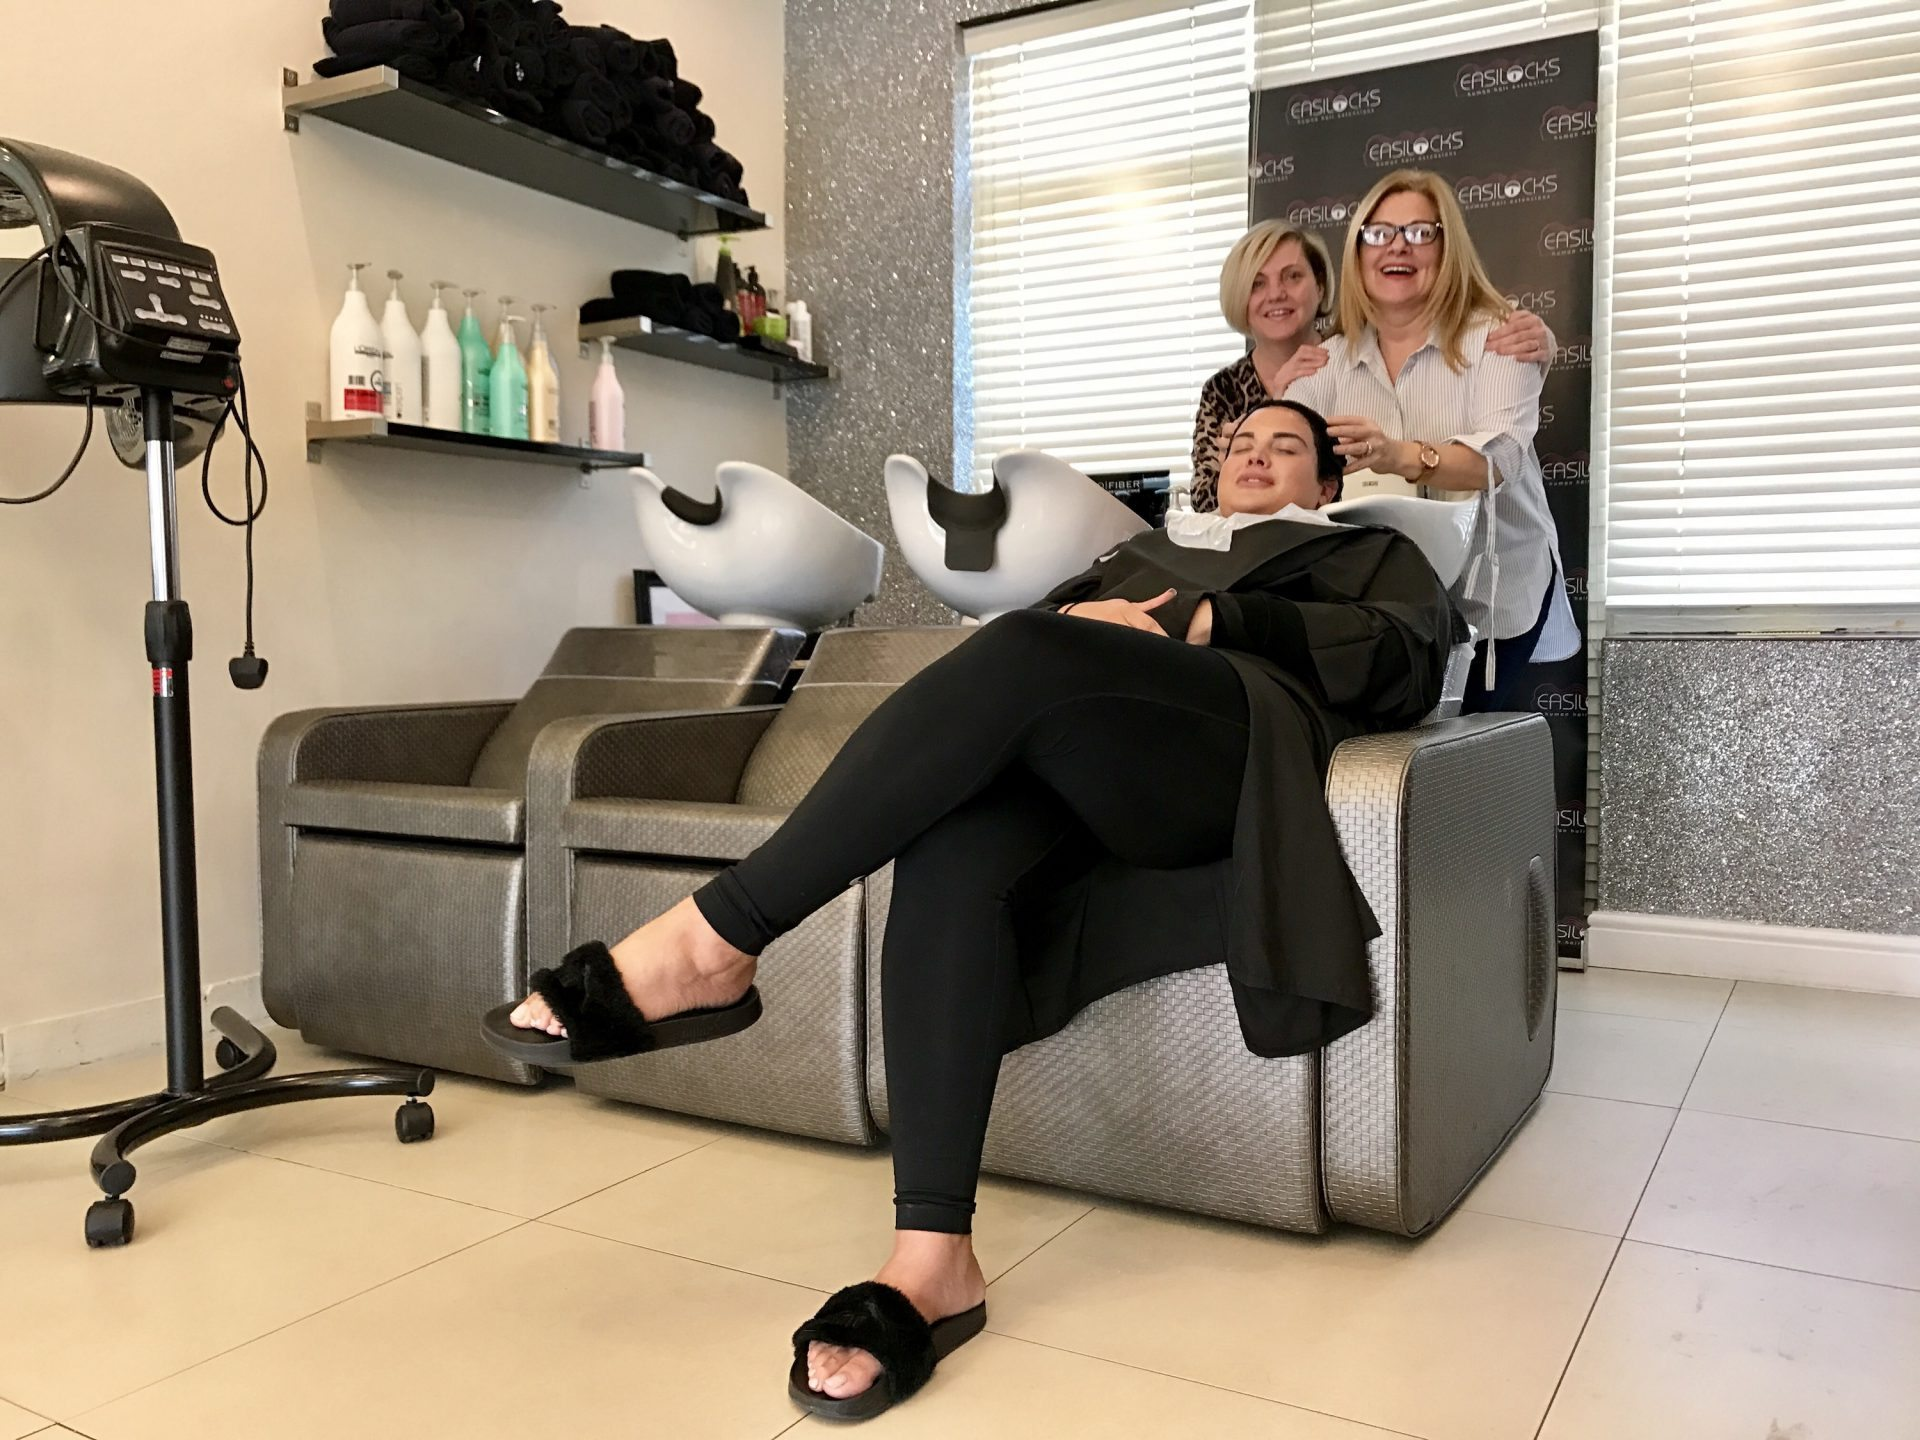 Lax hair salon shirley croydon